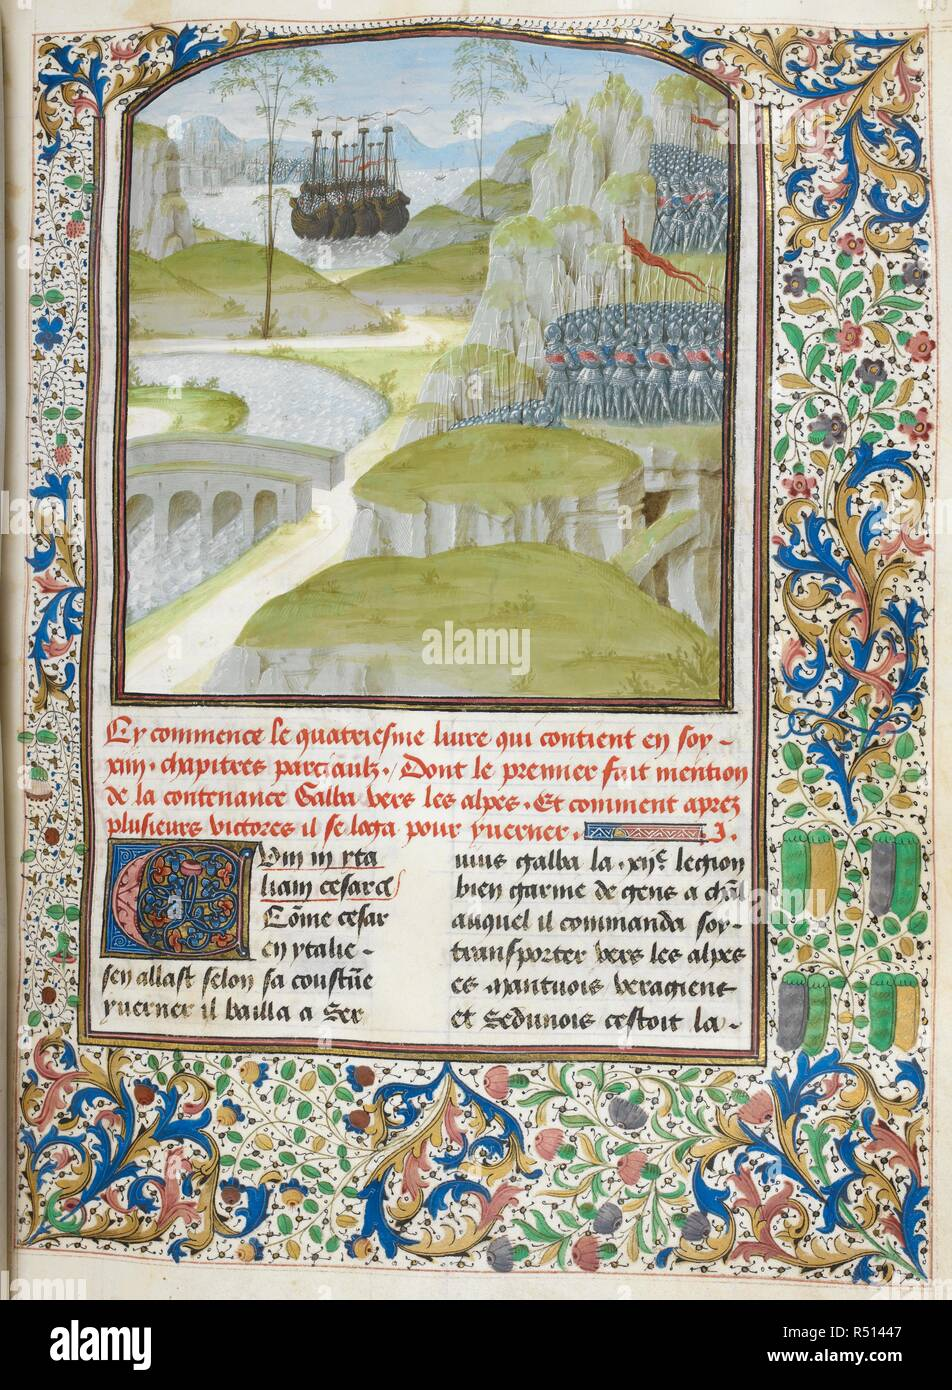 Galba's army crossing Alps (Book 4). Caesar, translated by Jan Du Quesne (or Jean Duchesne), Bellum Gallicum ( Les commentaires de Cesar ). 1473-1476. Source: Royal 16 G. VIII f.133. Language: French. Author: JULIUS CAESAR. Du Quesne, Jehan. - Stock Image